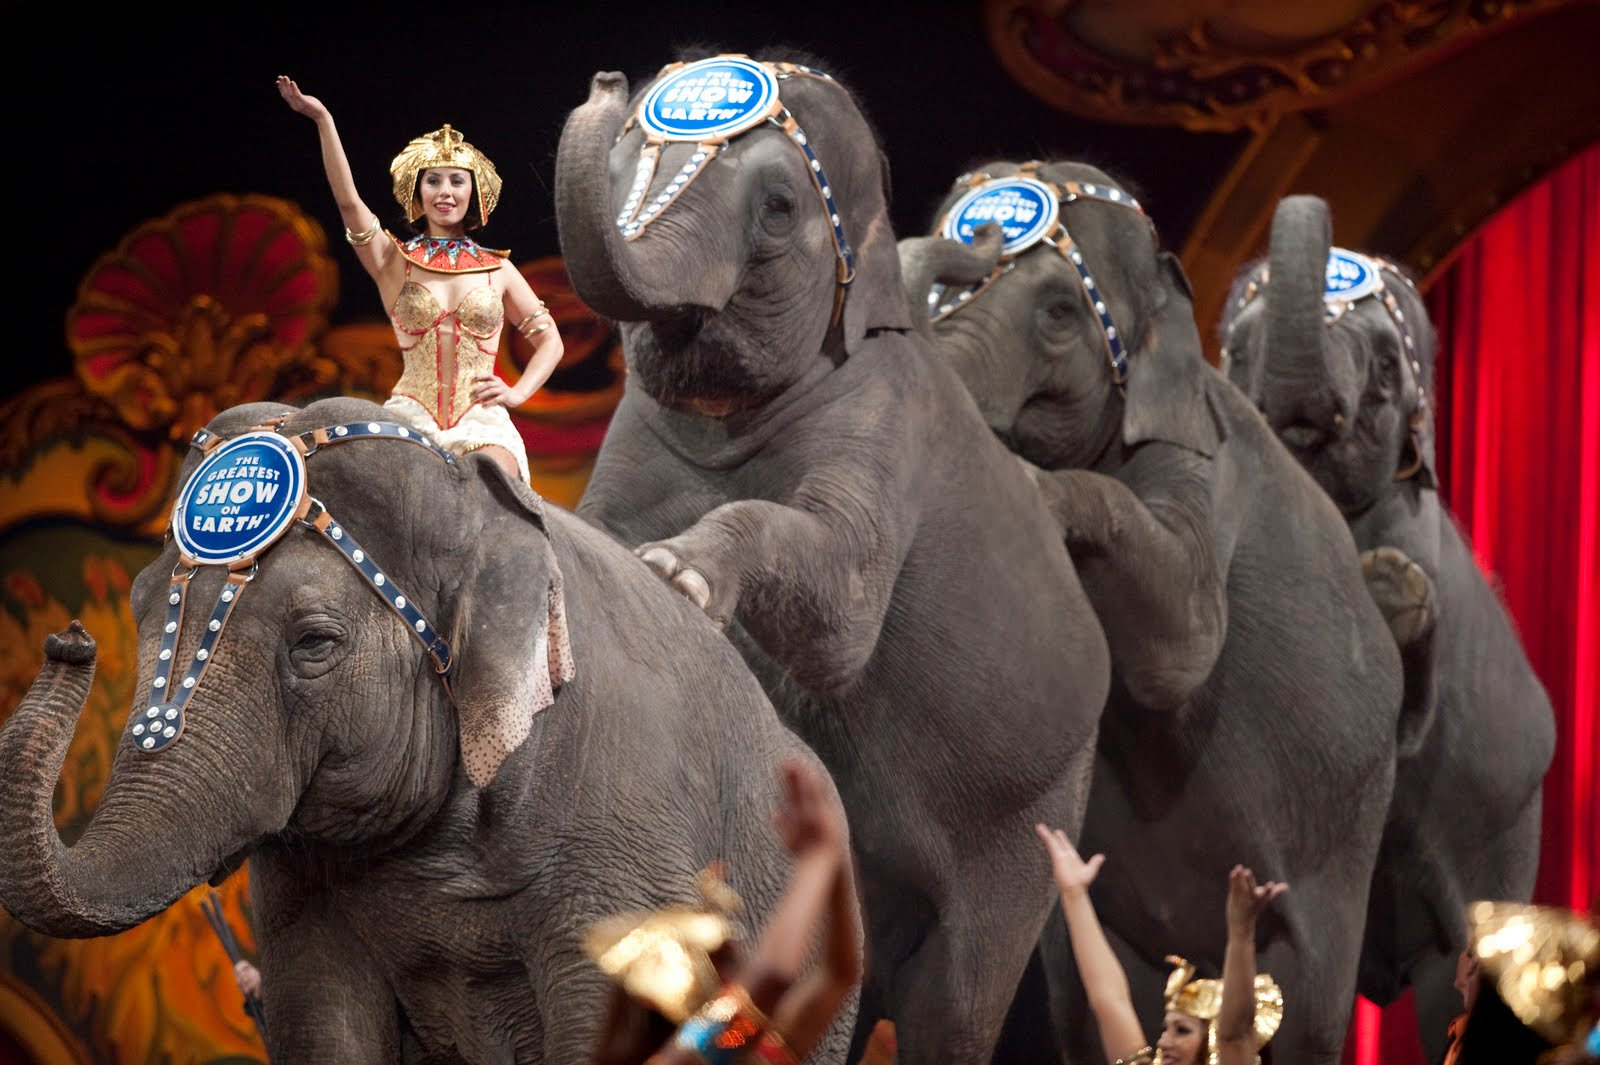 Poll: Should the Use of Wild Animals in Circuses be Banned?